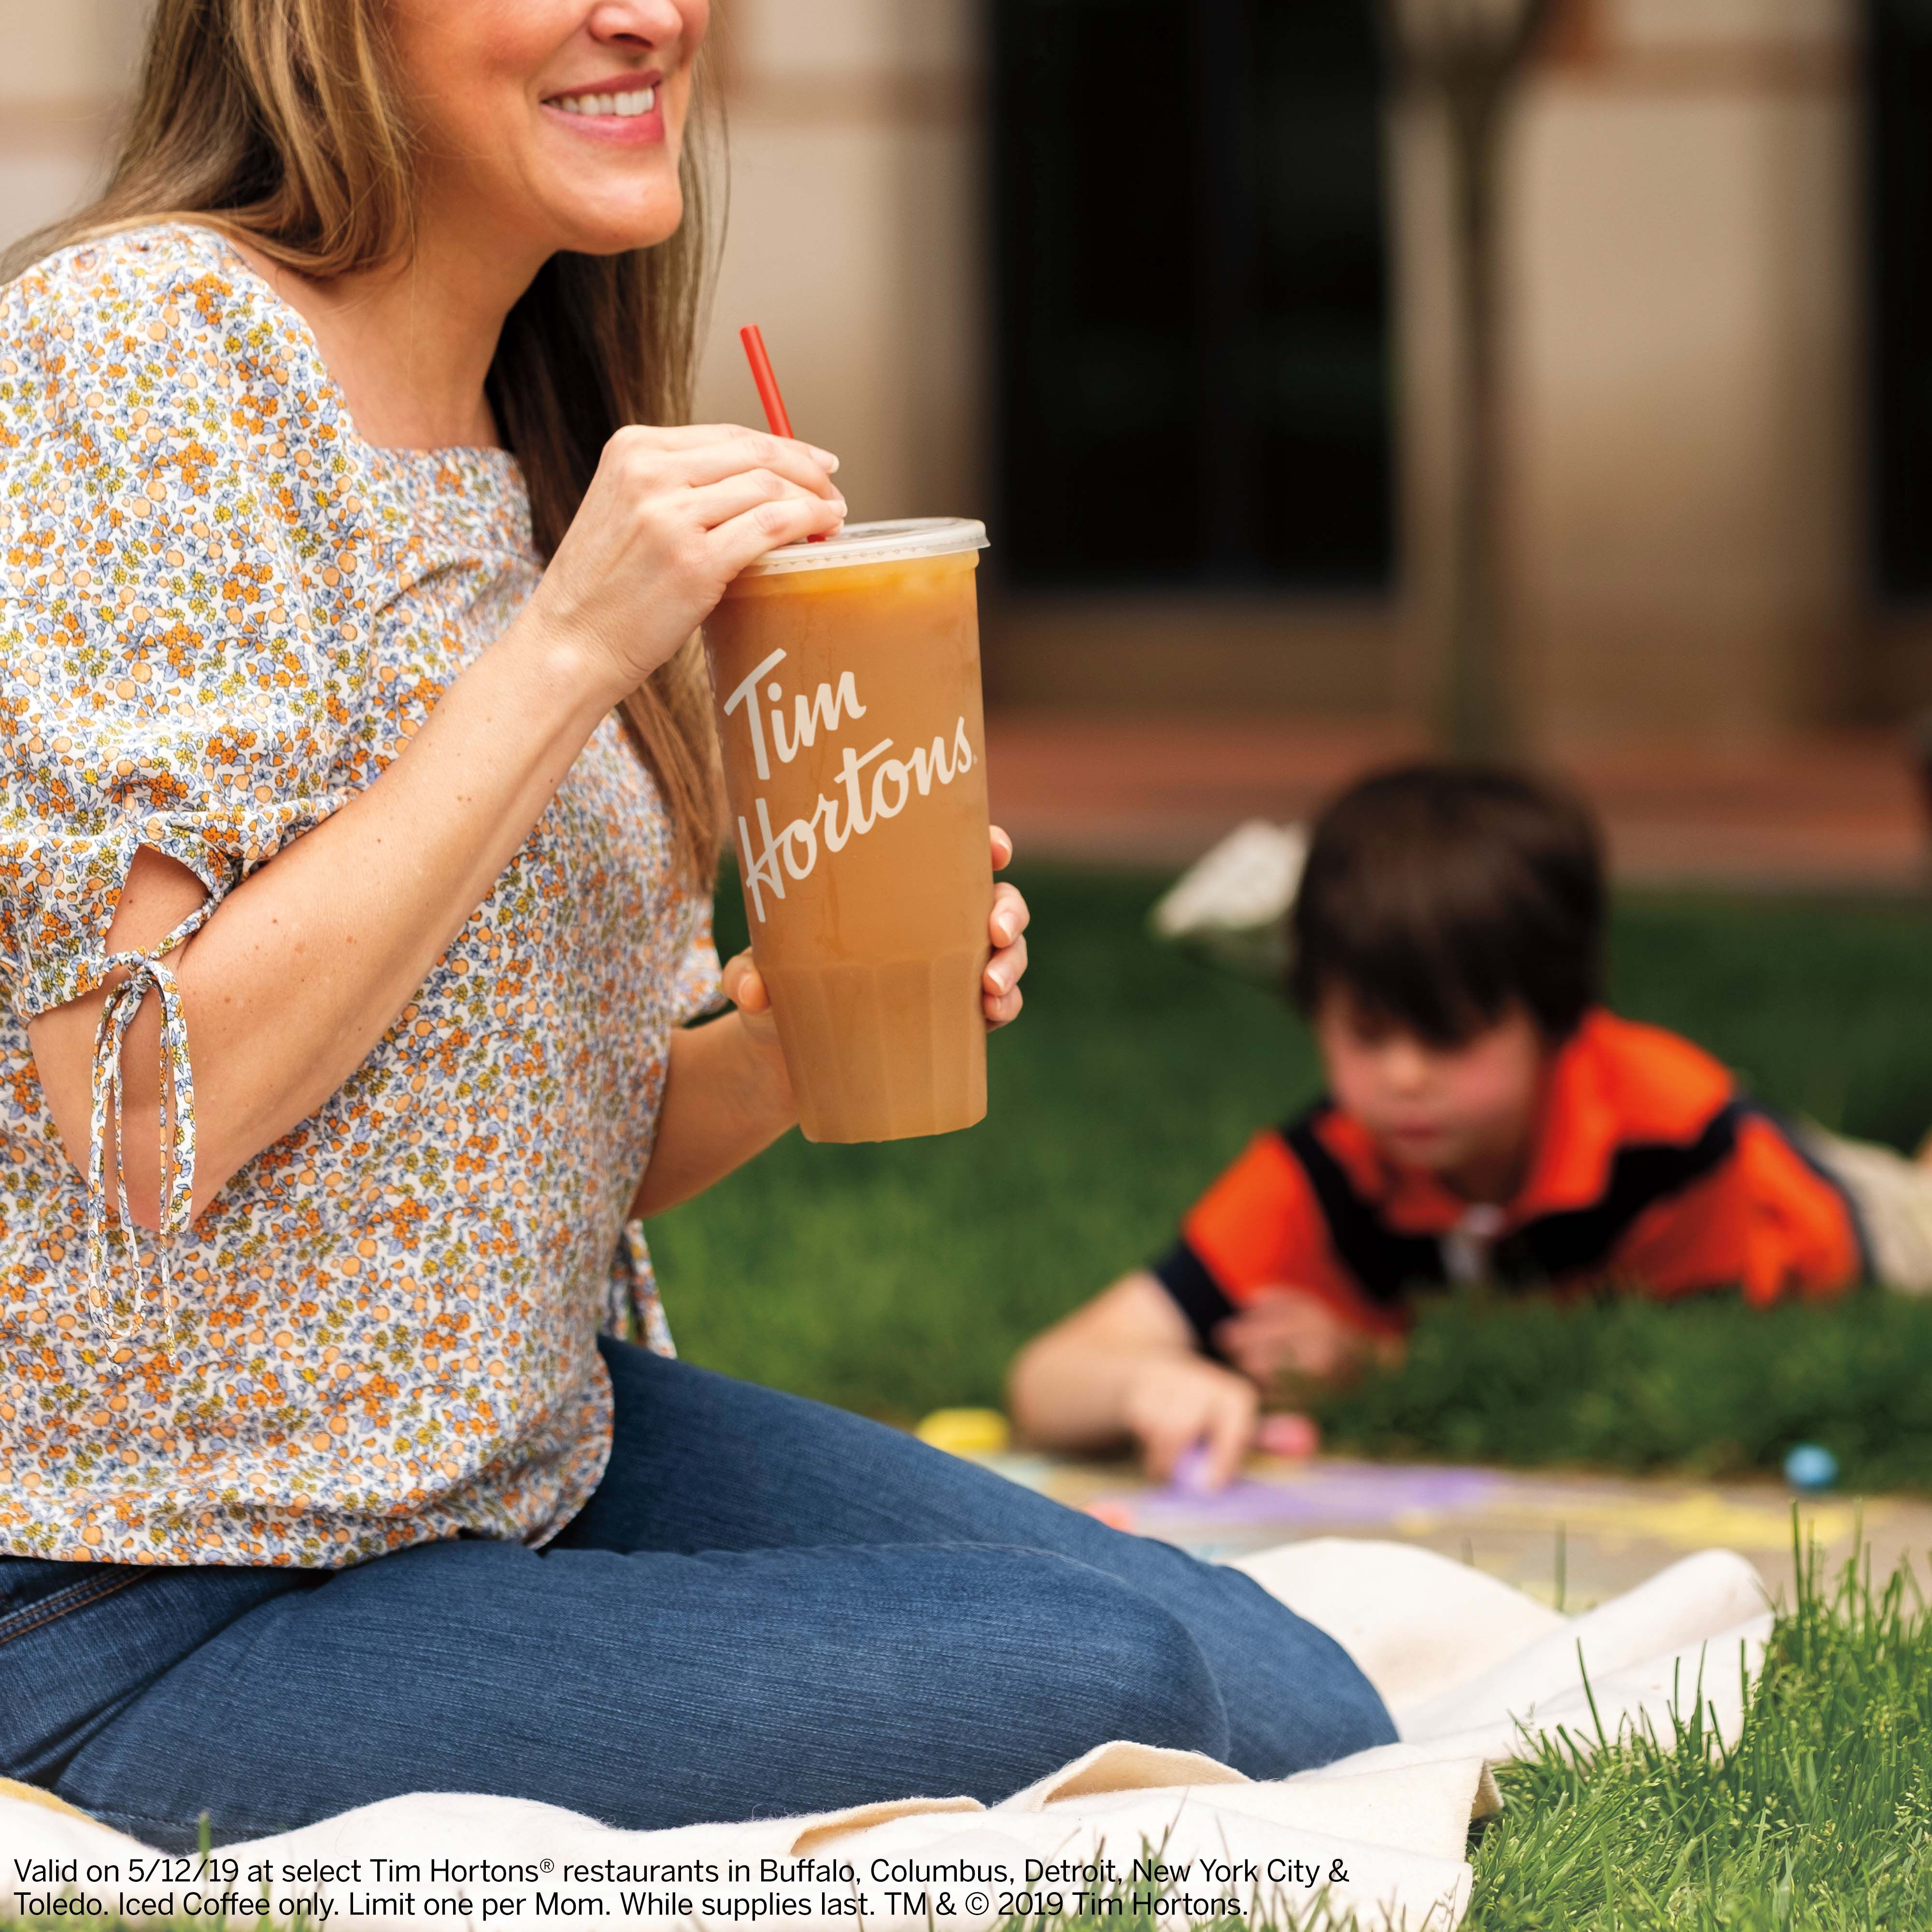 Moms need a Mom-sized iced coffee and Tim Hortons delivers